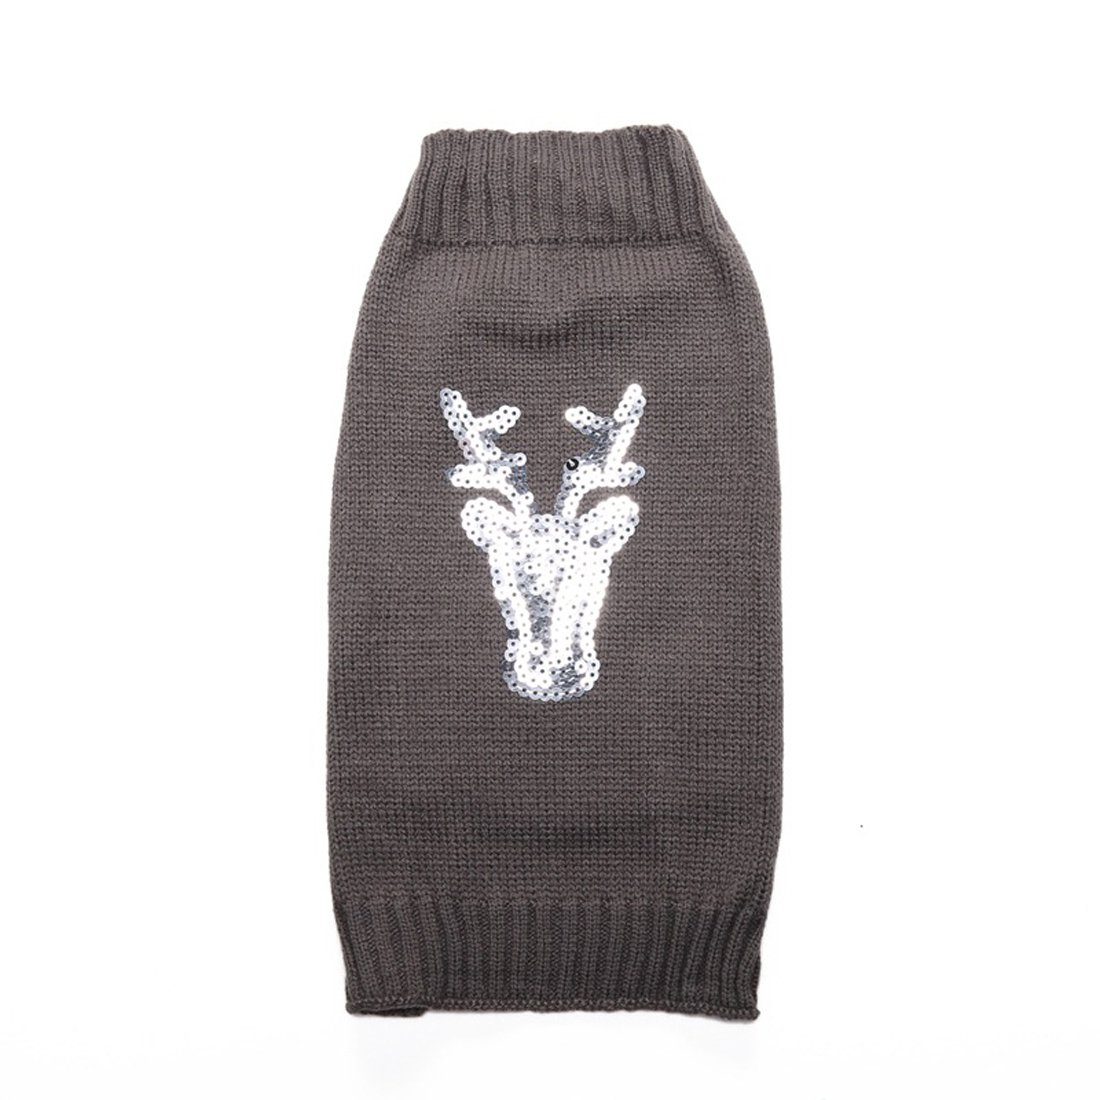 GabeFish Silver Elk Pattern Sweater For Dogs Cats Reindeer Animal Embroidery Print Xmas Winter Pets Clothes Apparel Gray Medium